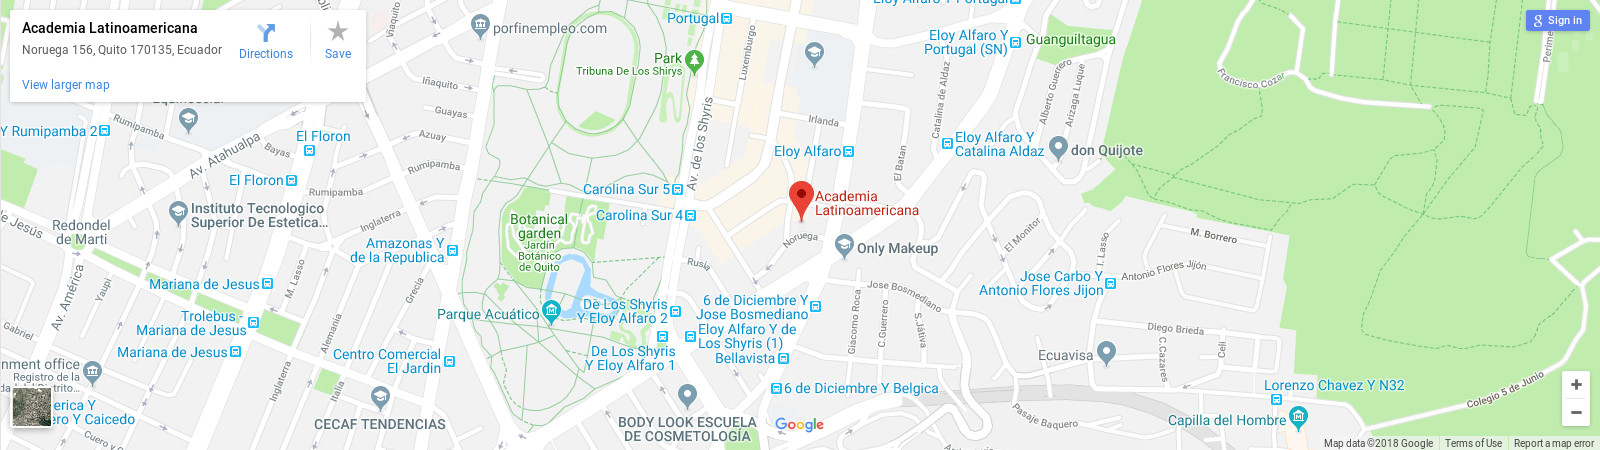 Academia Latinoamericana Spanish school in Quito location map